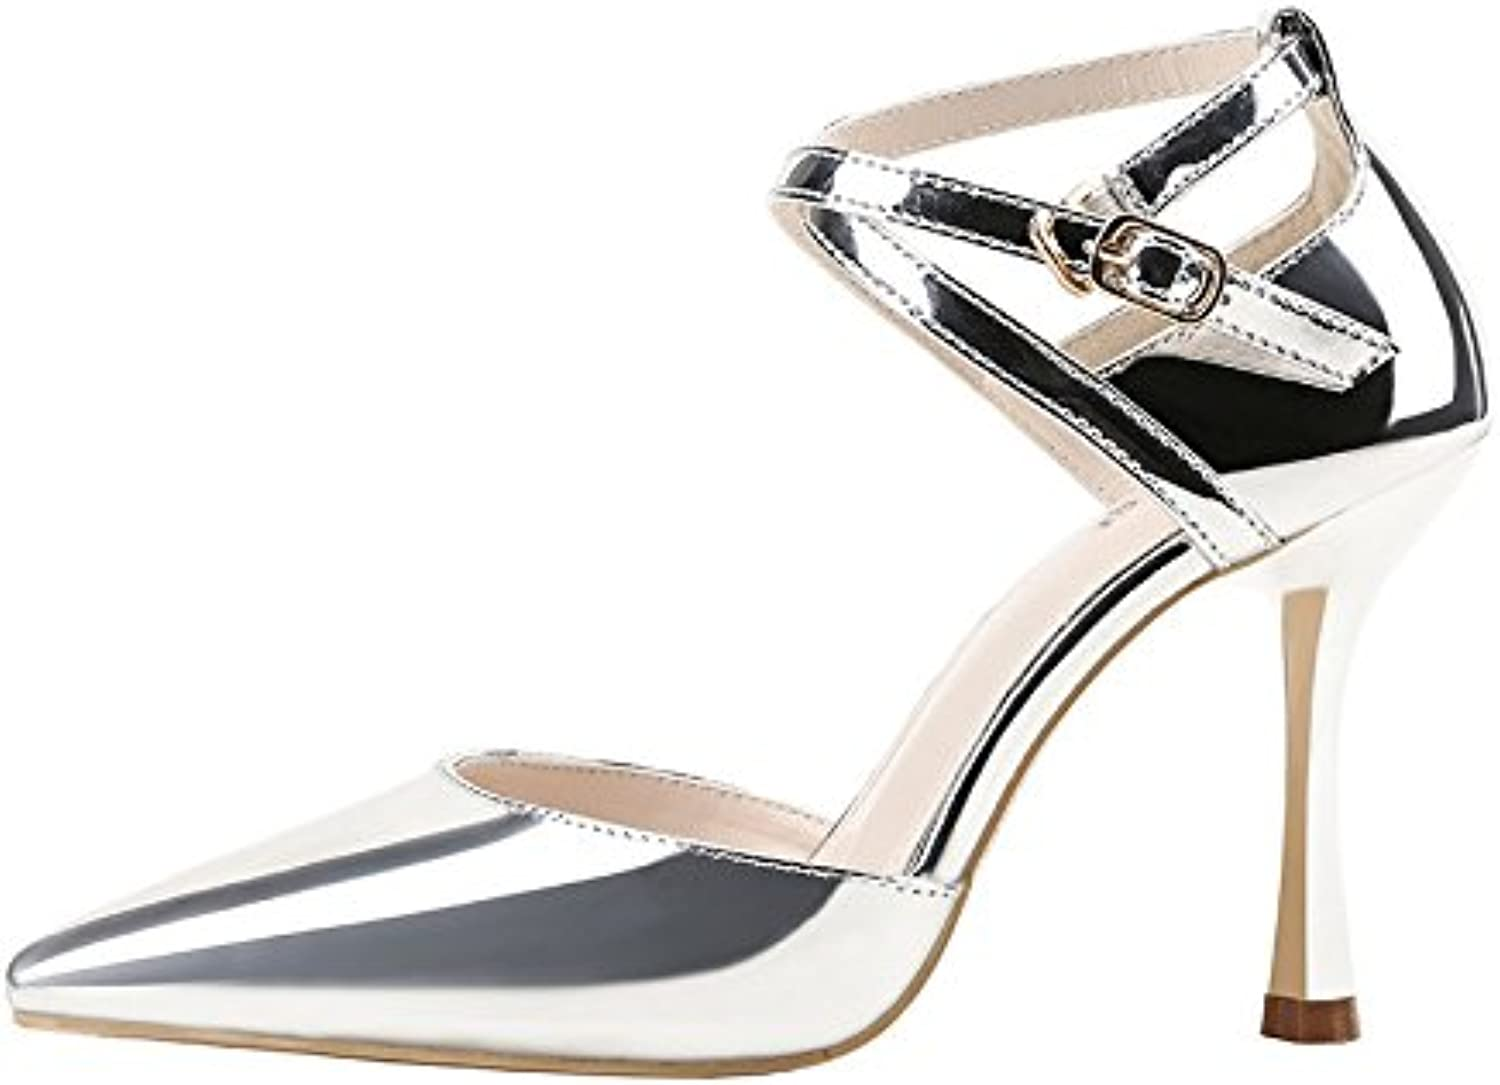 LGK&FA Pointed Shoes Patent Leather Metal Sandals OL High Heels Cross Ties Single Shoes Women's Silver. Thirty-Six...